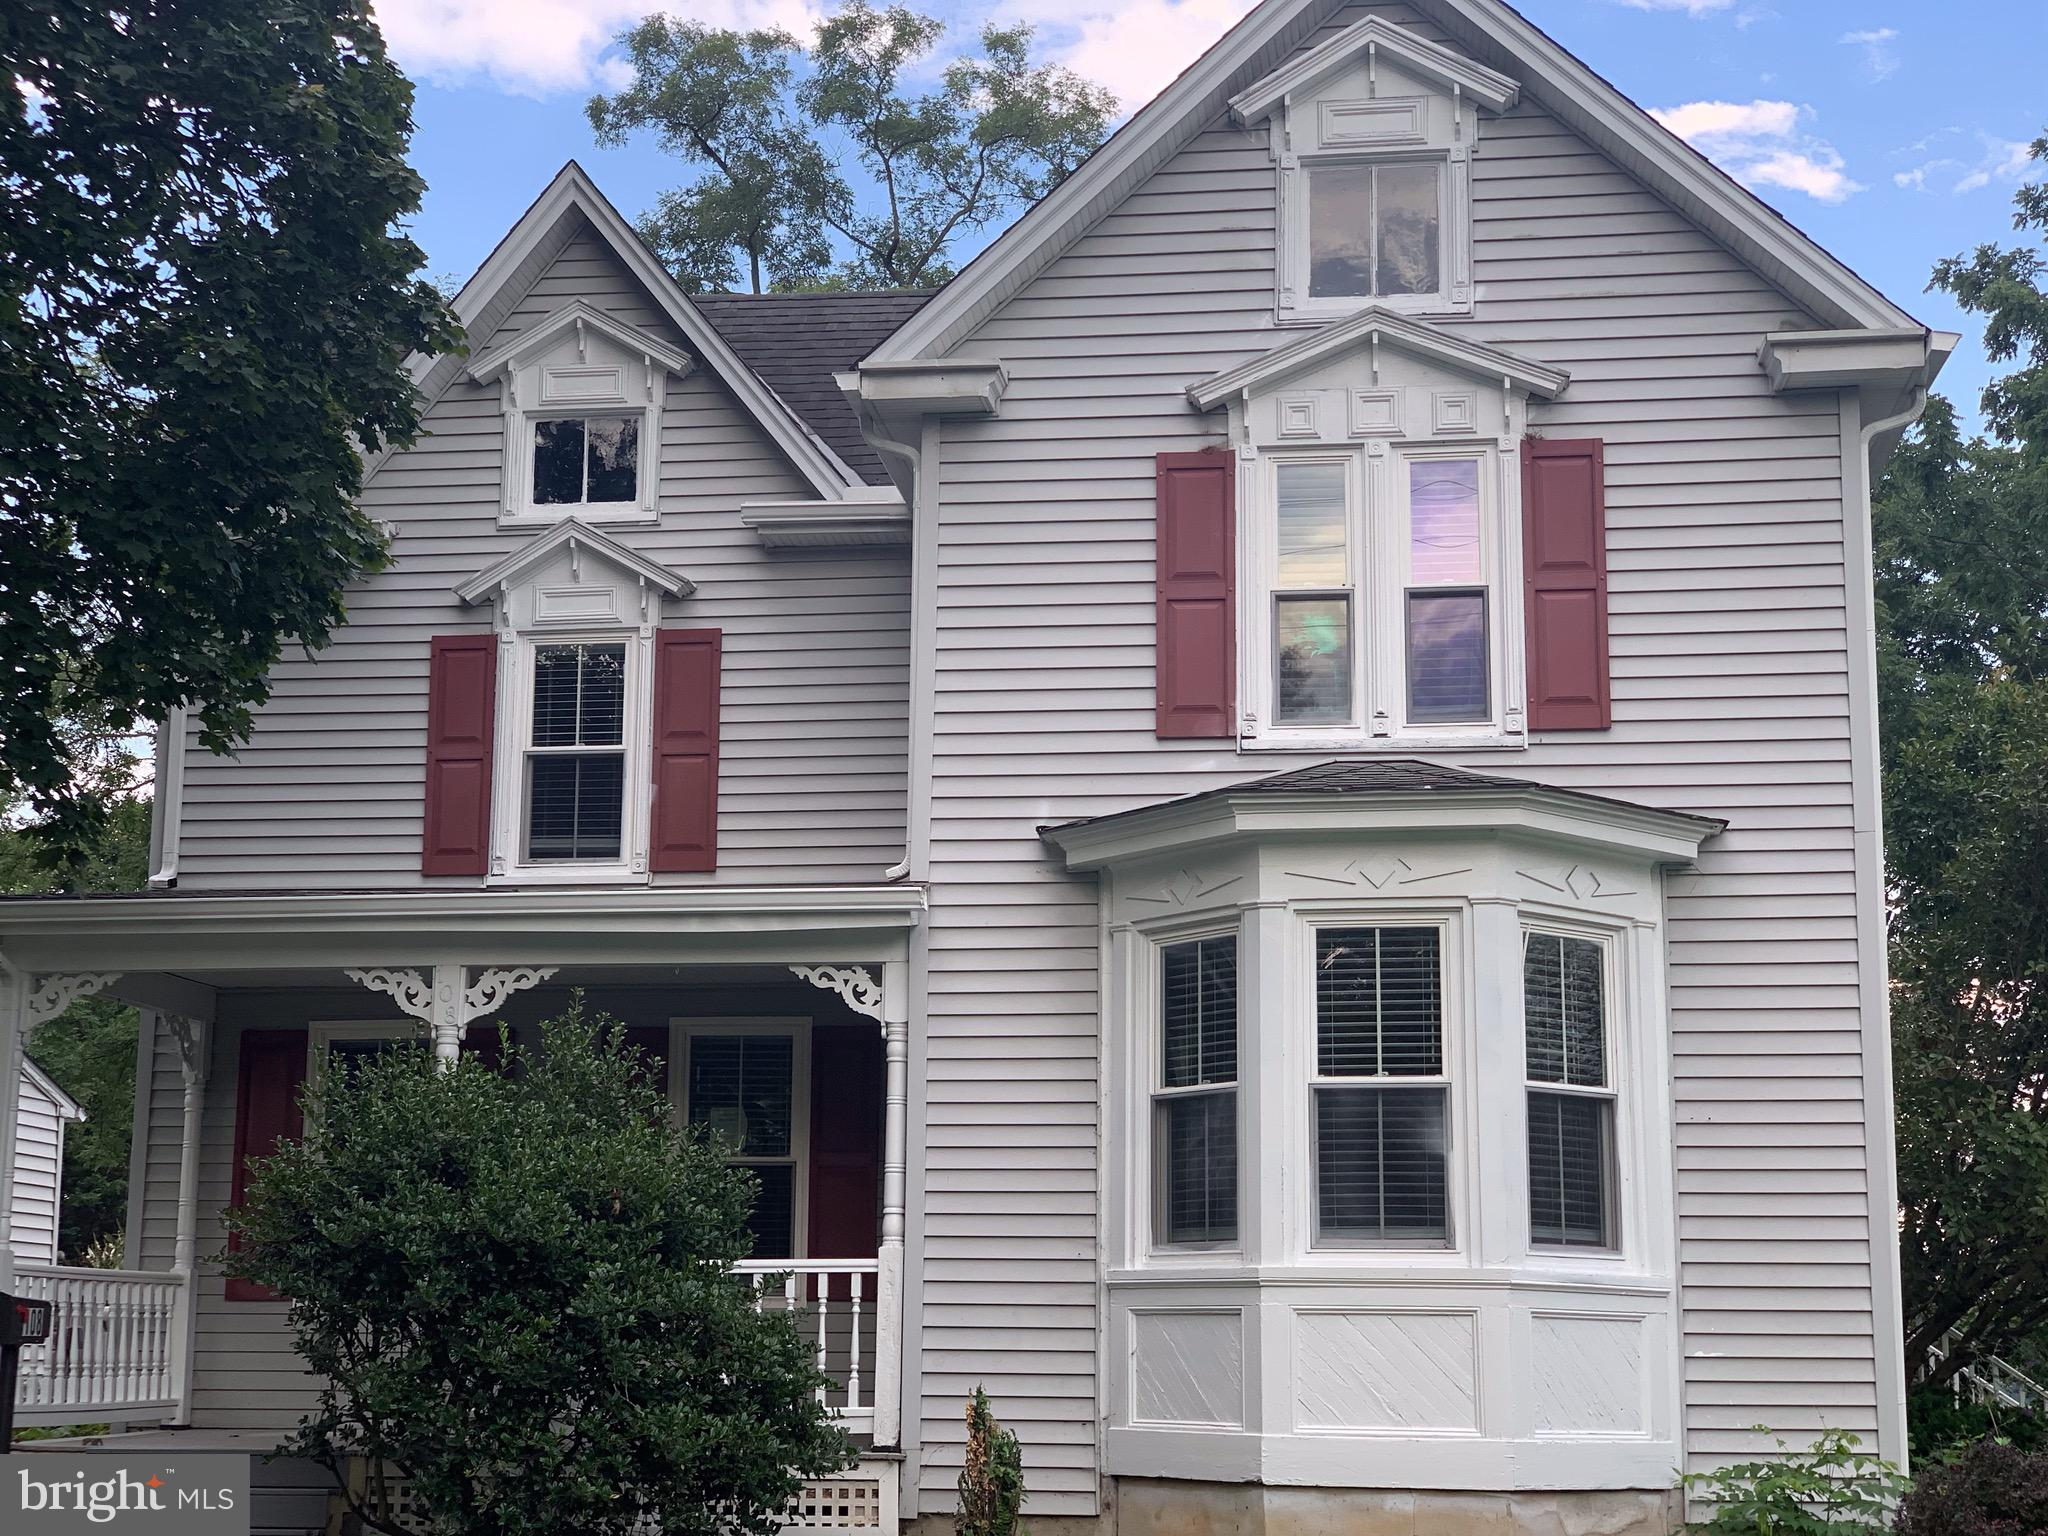 108 Front St gives you the best of both worlds; a historic Victorian home with character and charm b